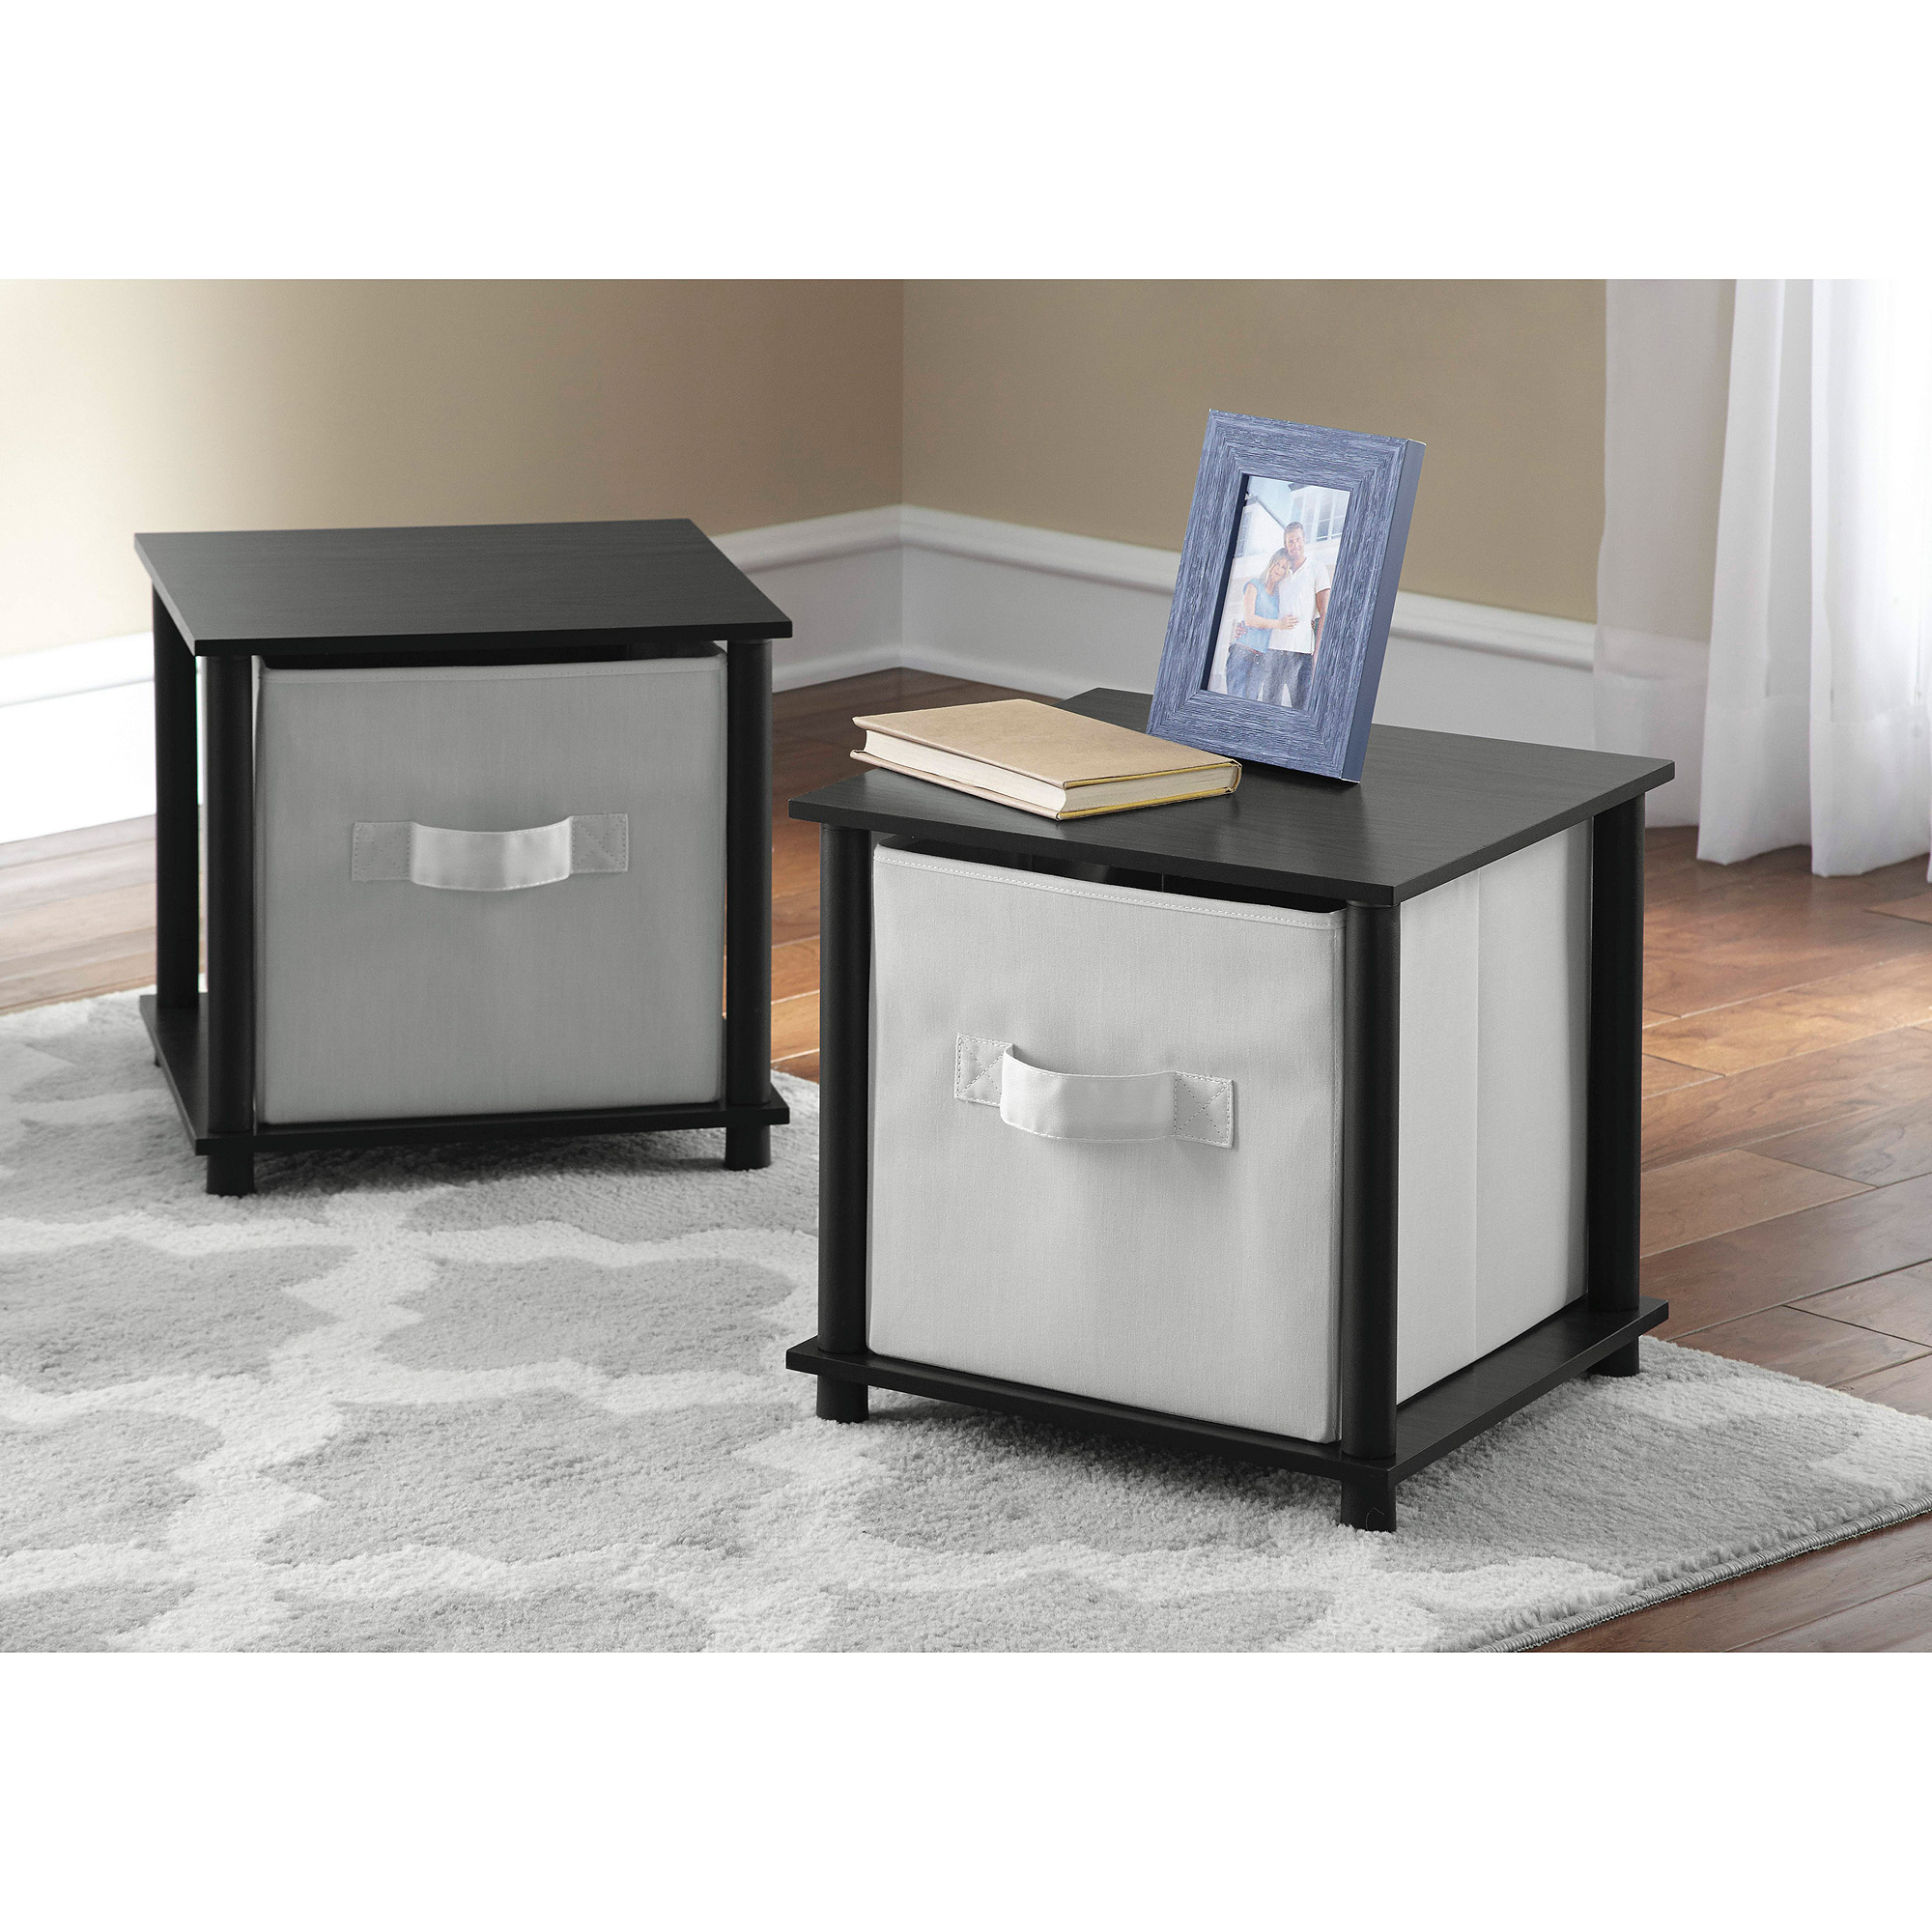 Mainstays No Tools Single Cube Storage Shelf Side Tables, Set Of 2    Walmart.com